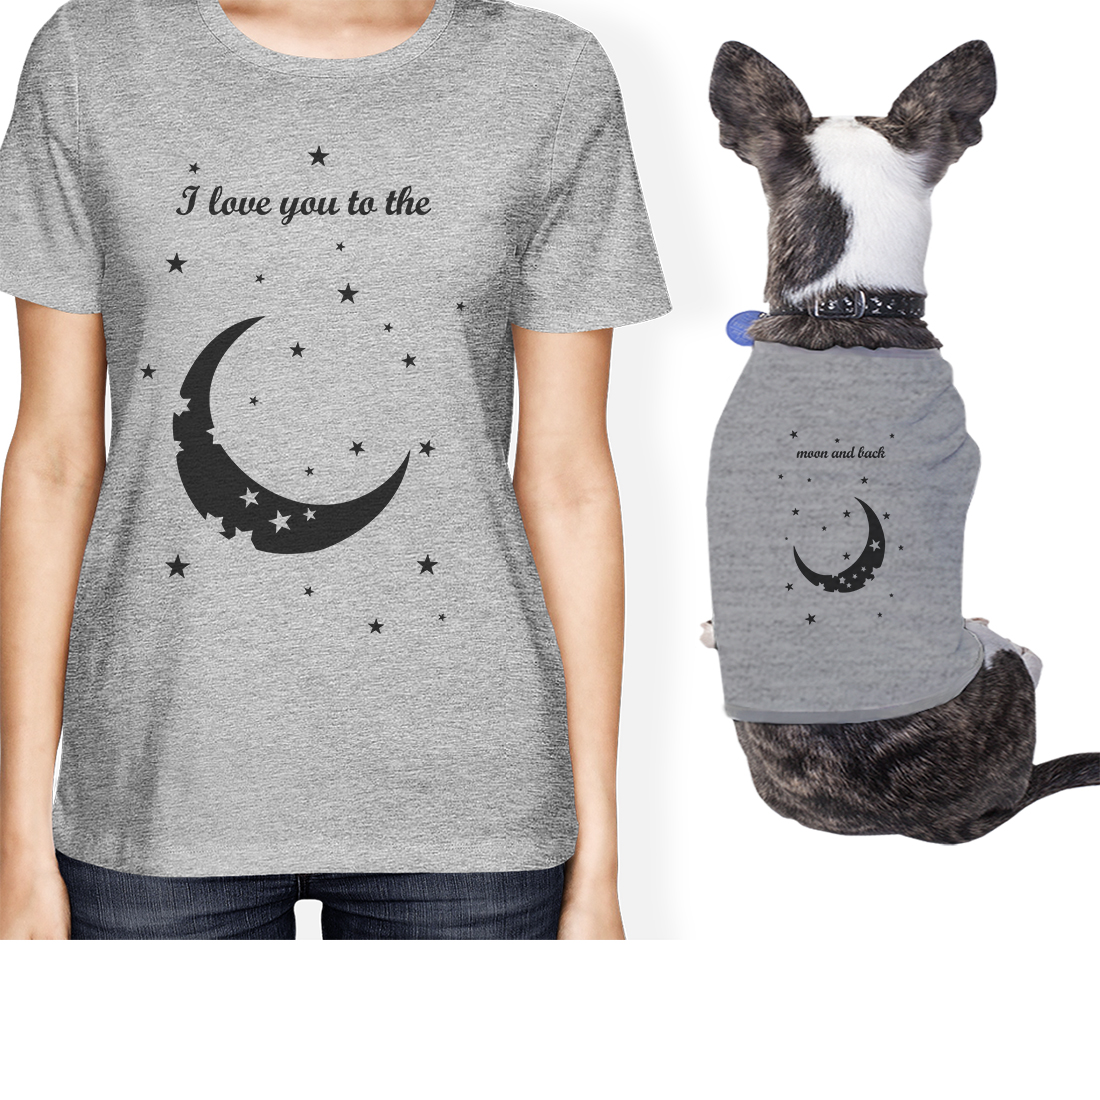 Moon And Back Small Pet Owner Matching Gift Outfits Grey Womens Top